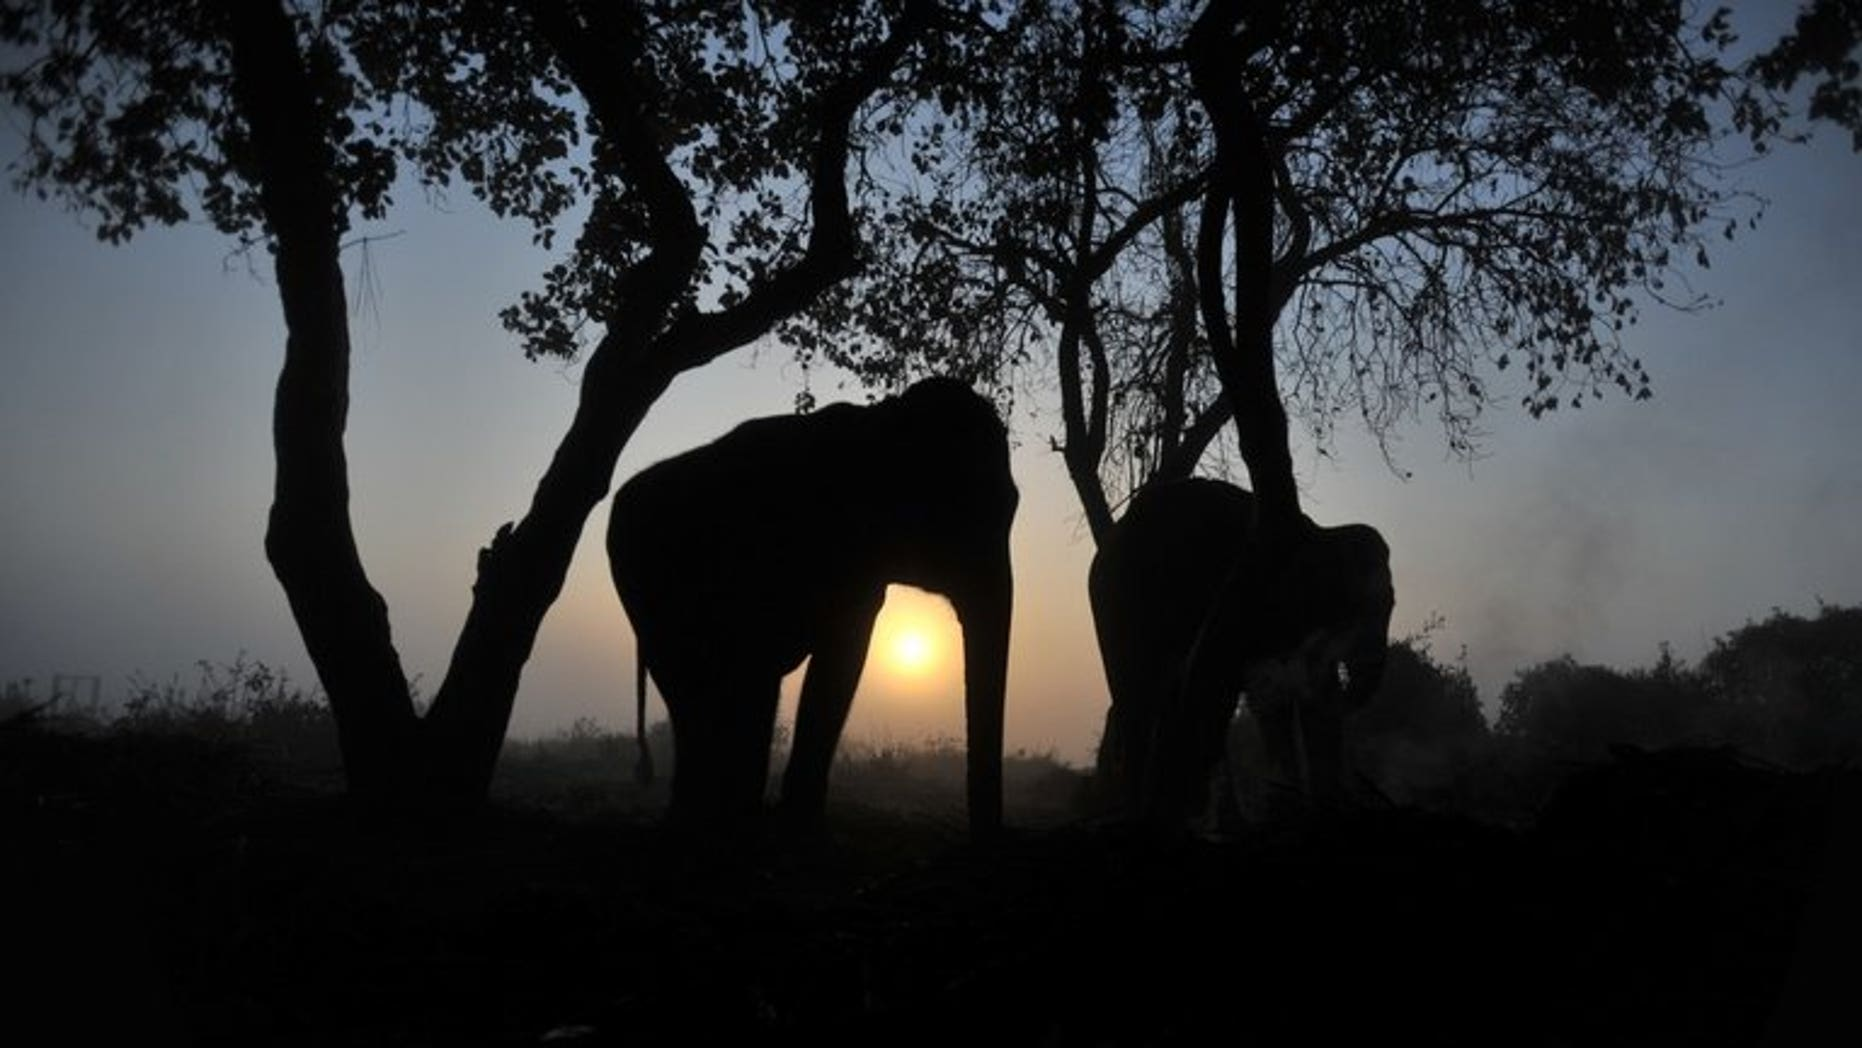 This file photo shows elephants resting under a tree in Chitwan, some 150 km southwest of Kathmandu, on December 29, 2011. An elephant trampled a 12-year-old girl to death after dragging her away from her home in a remote region of southeastern Nepal on Monday, according to police.